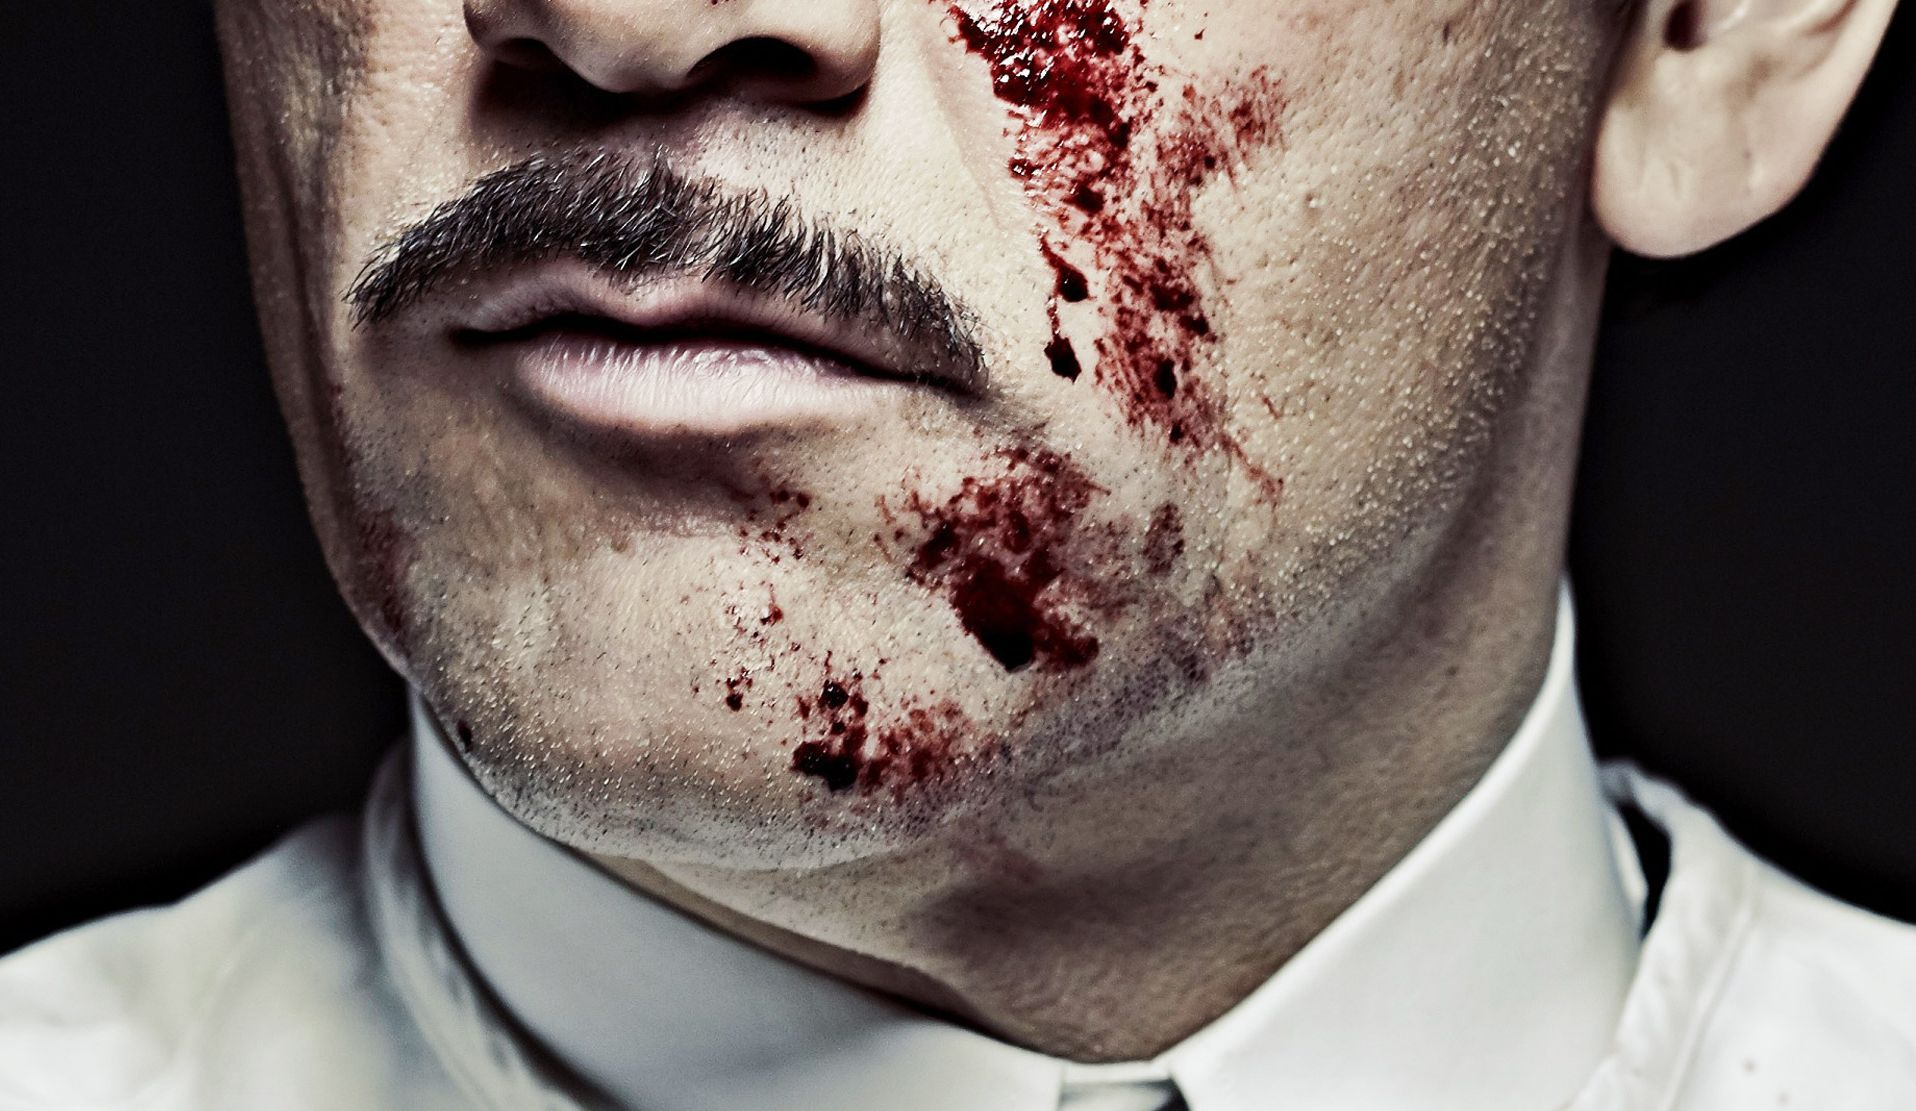 The Knick bloody face poster